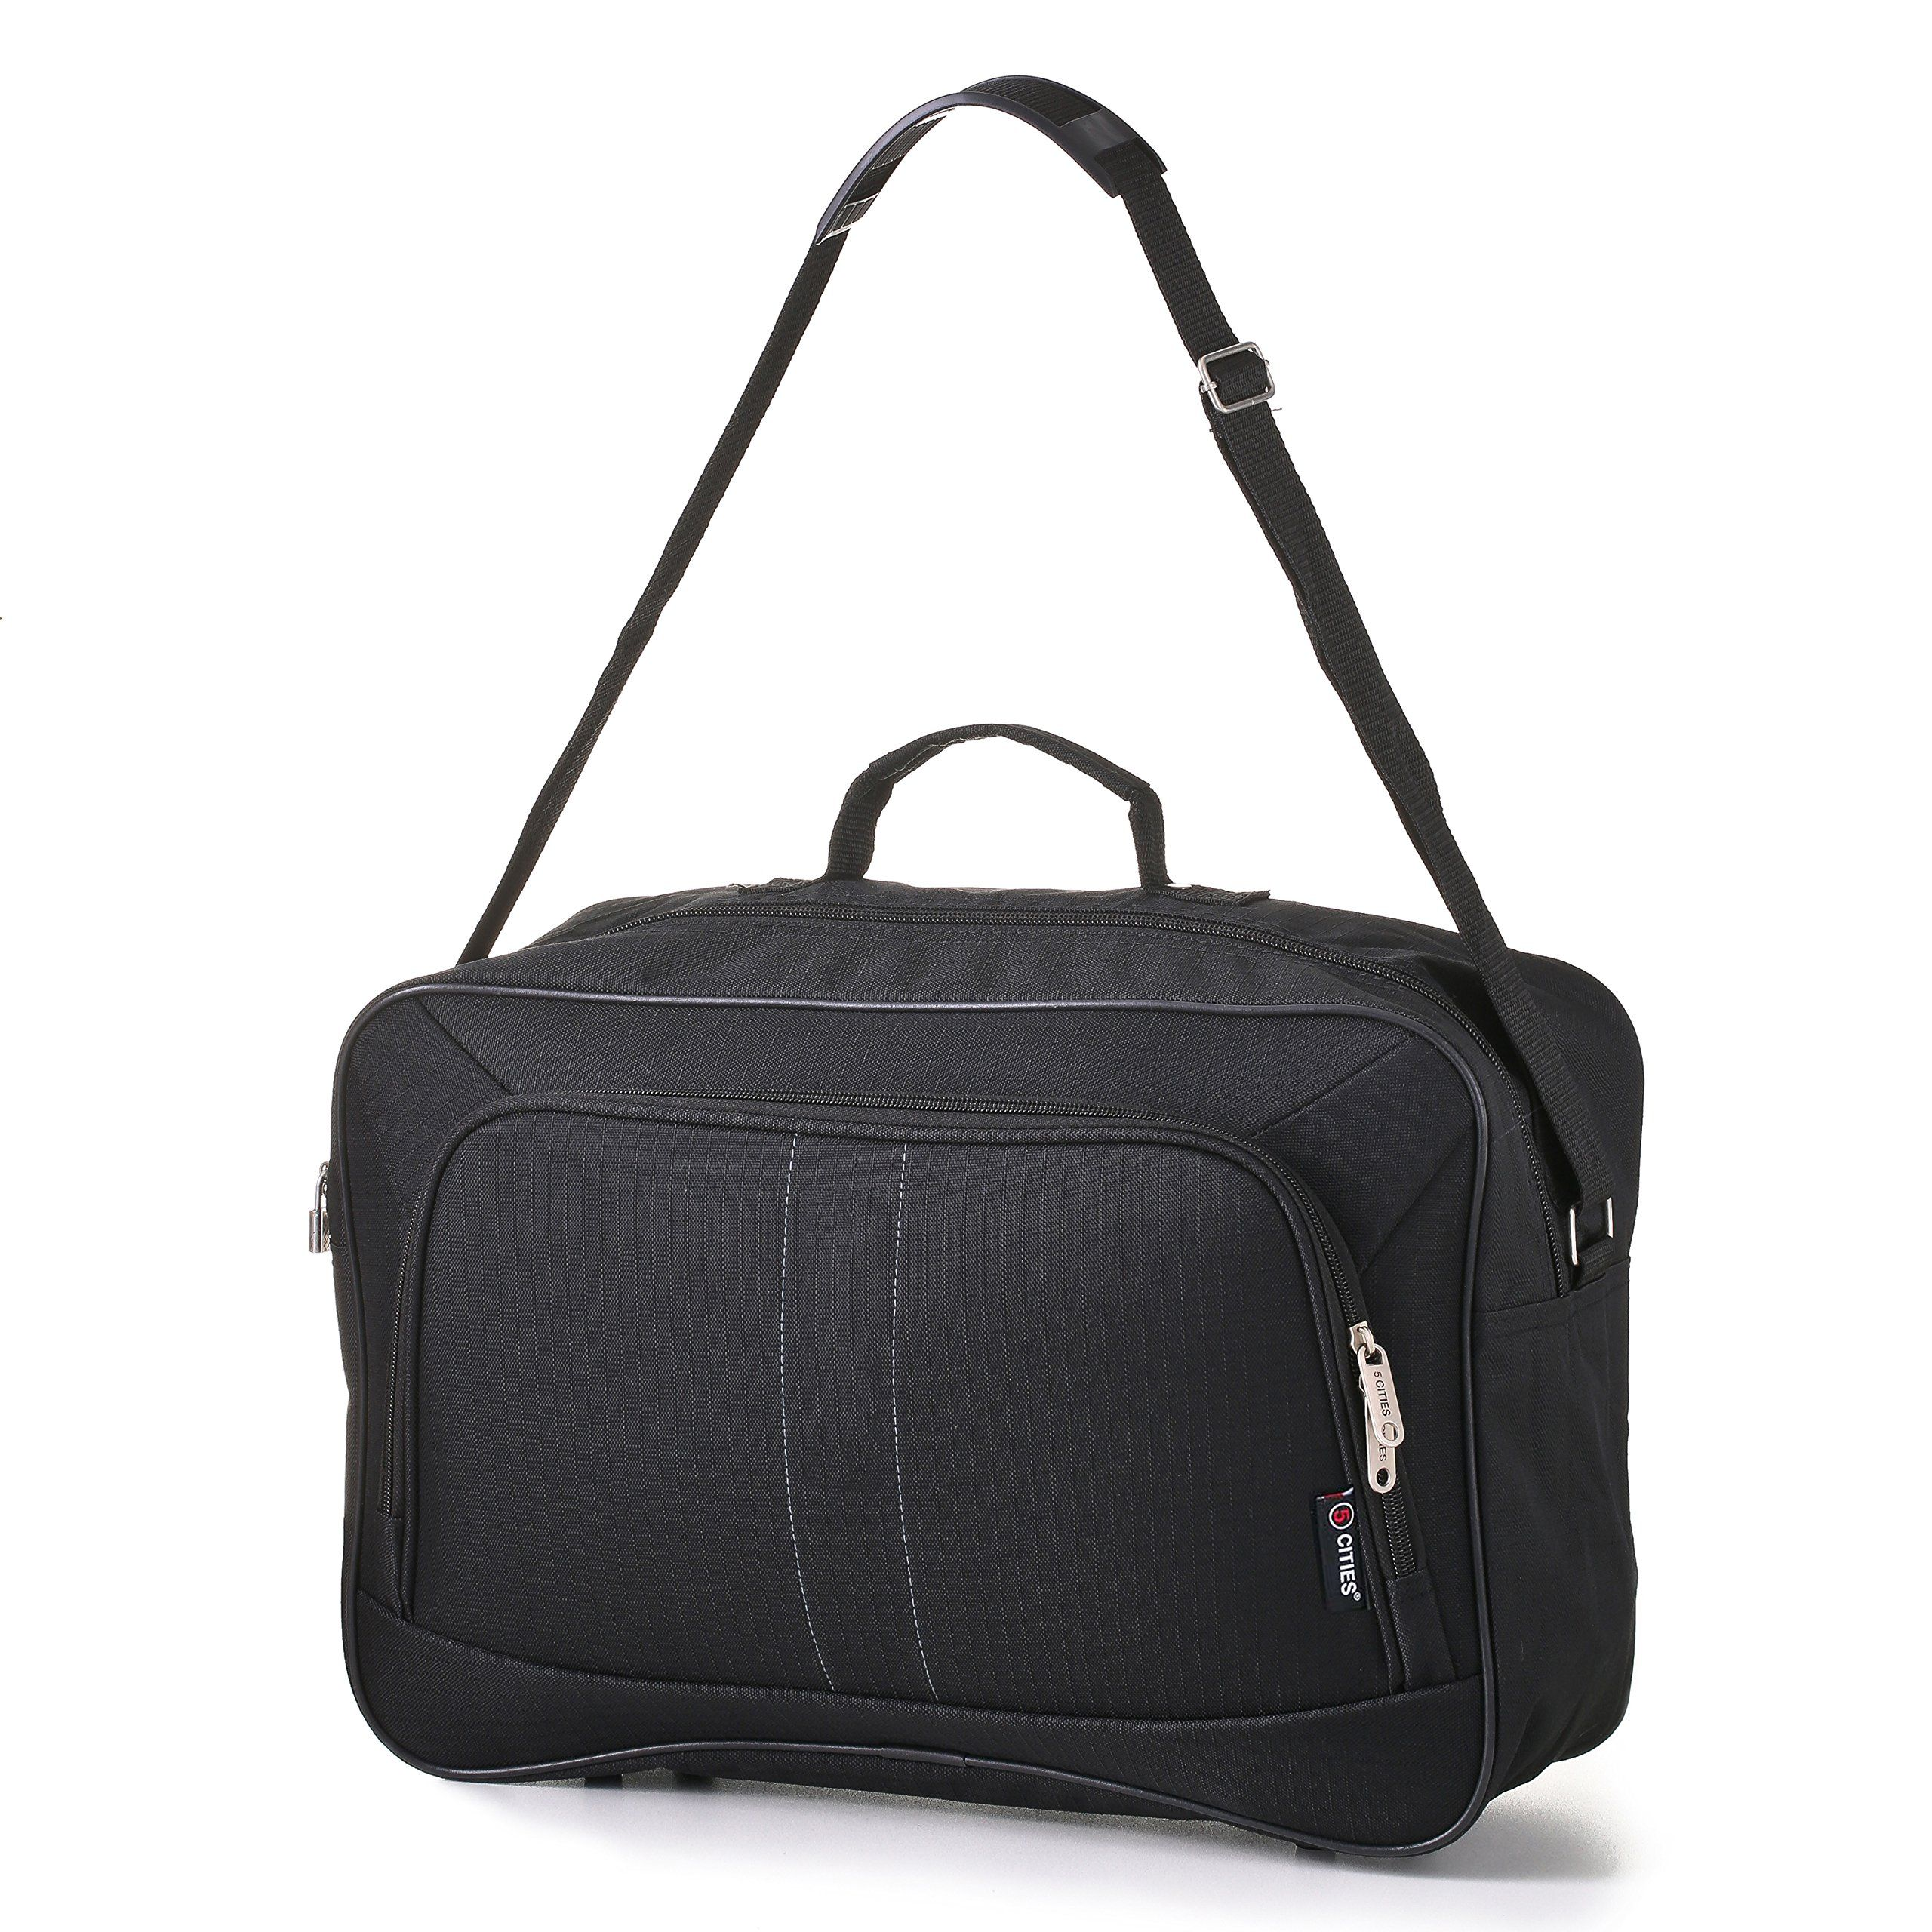 16 Inch Carry On Hand Luggage Flight Duffle Bag, 2nd Bag